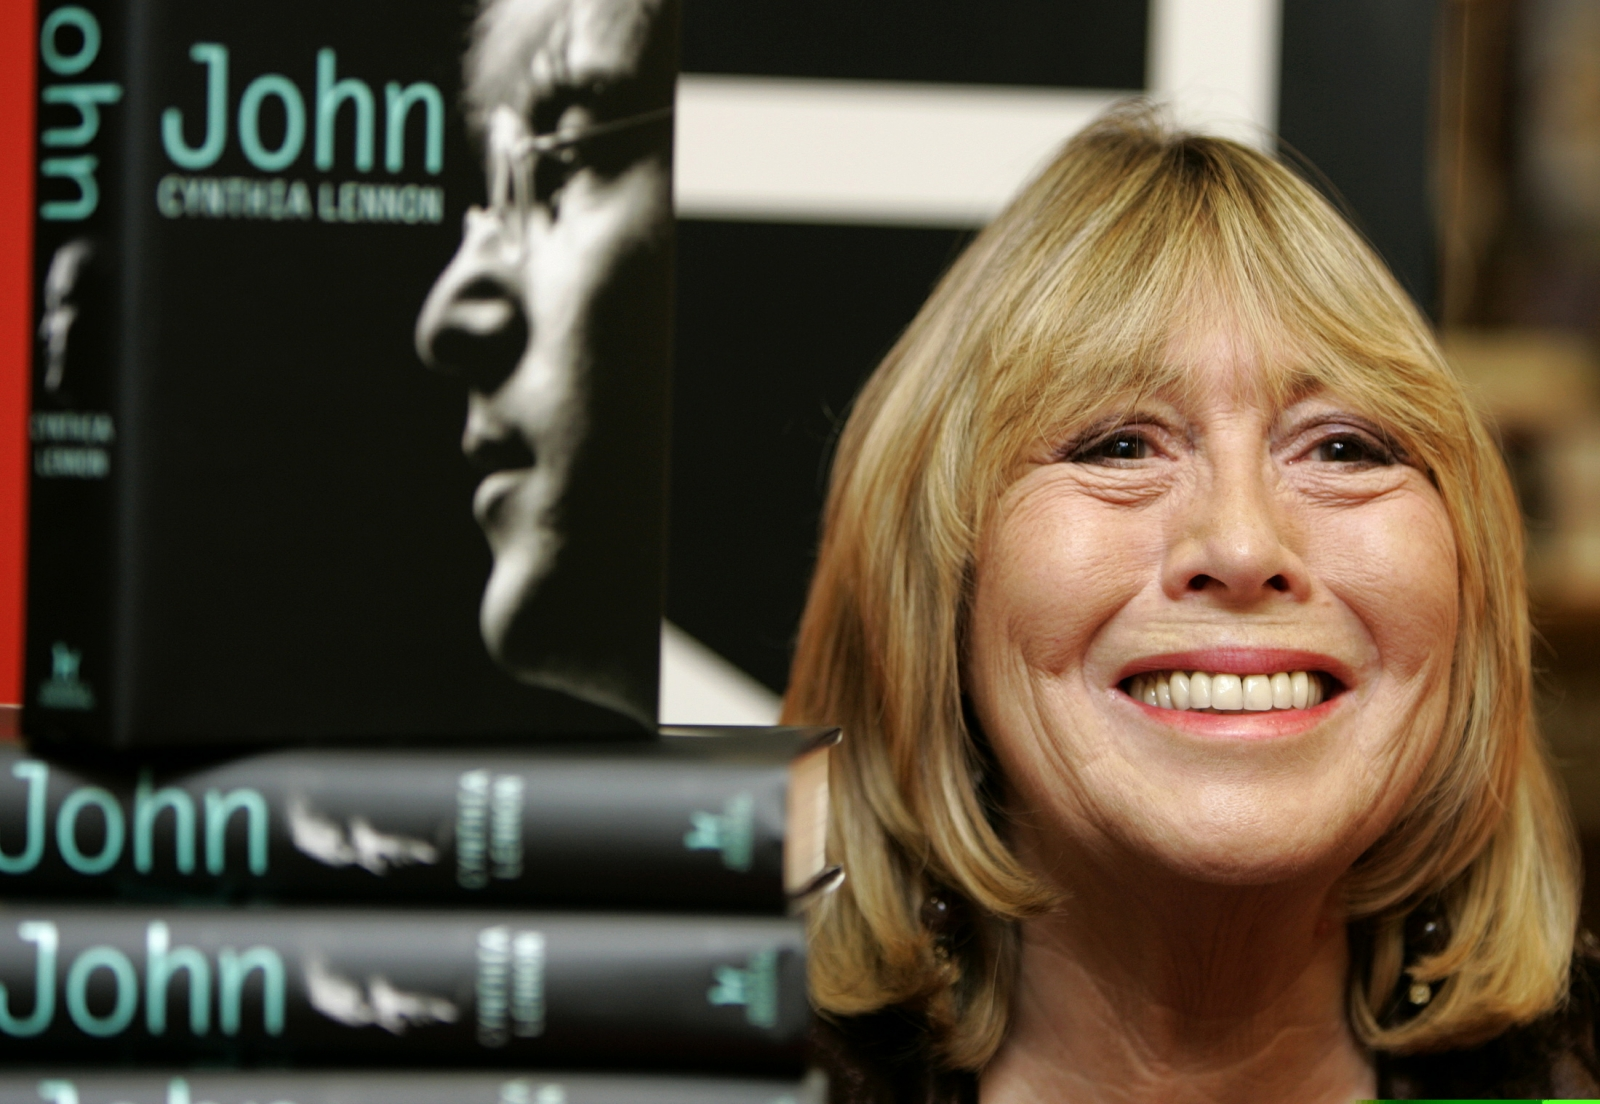 Cynthia Lennon at book launch